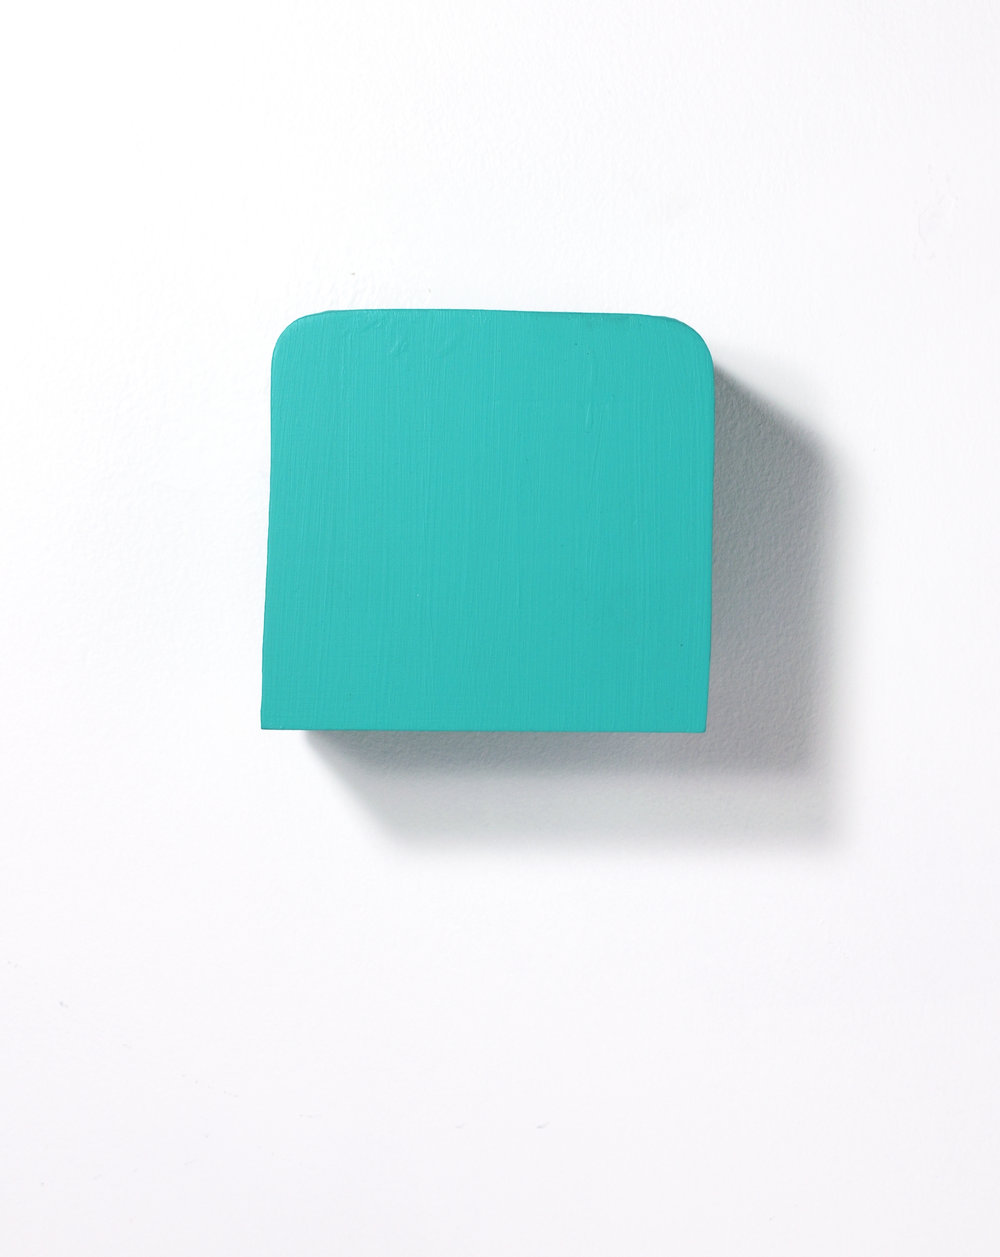 turquoise form, 2018 *sold